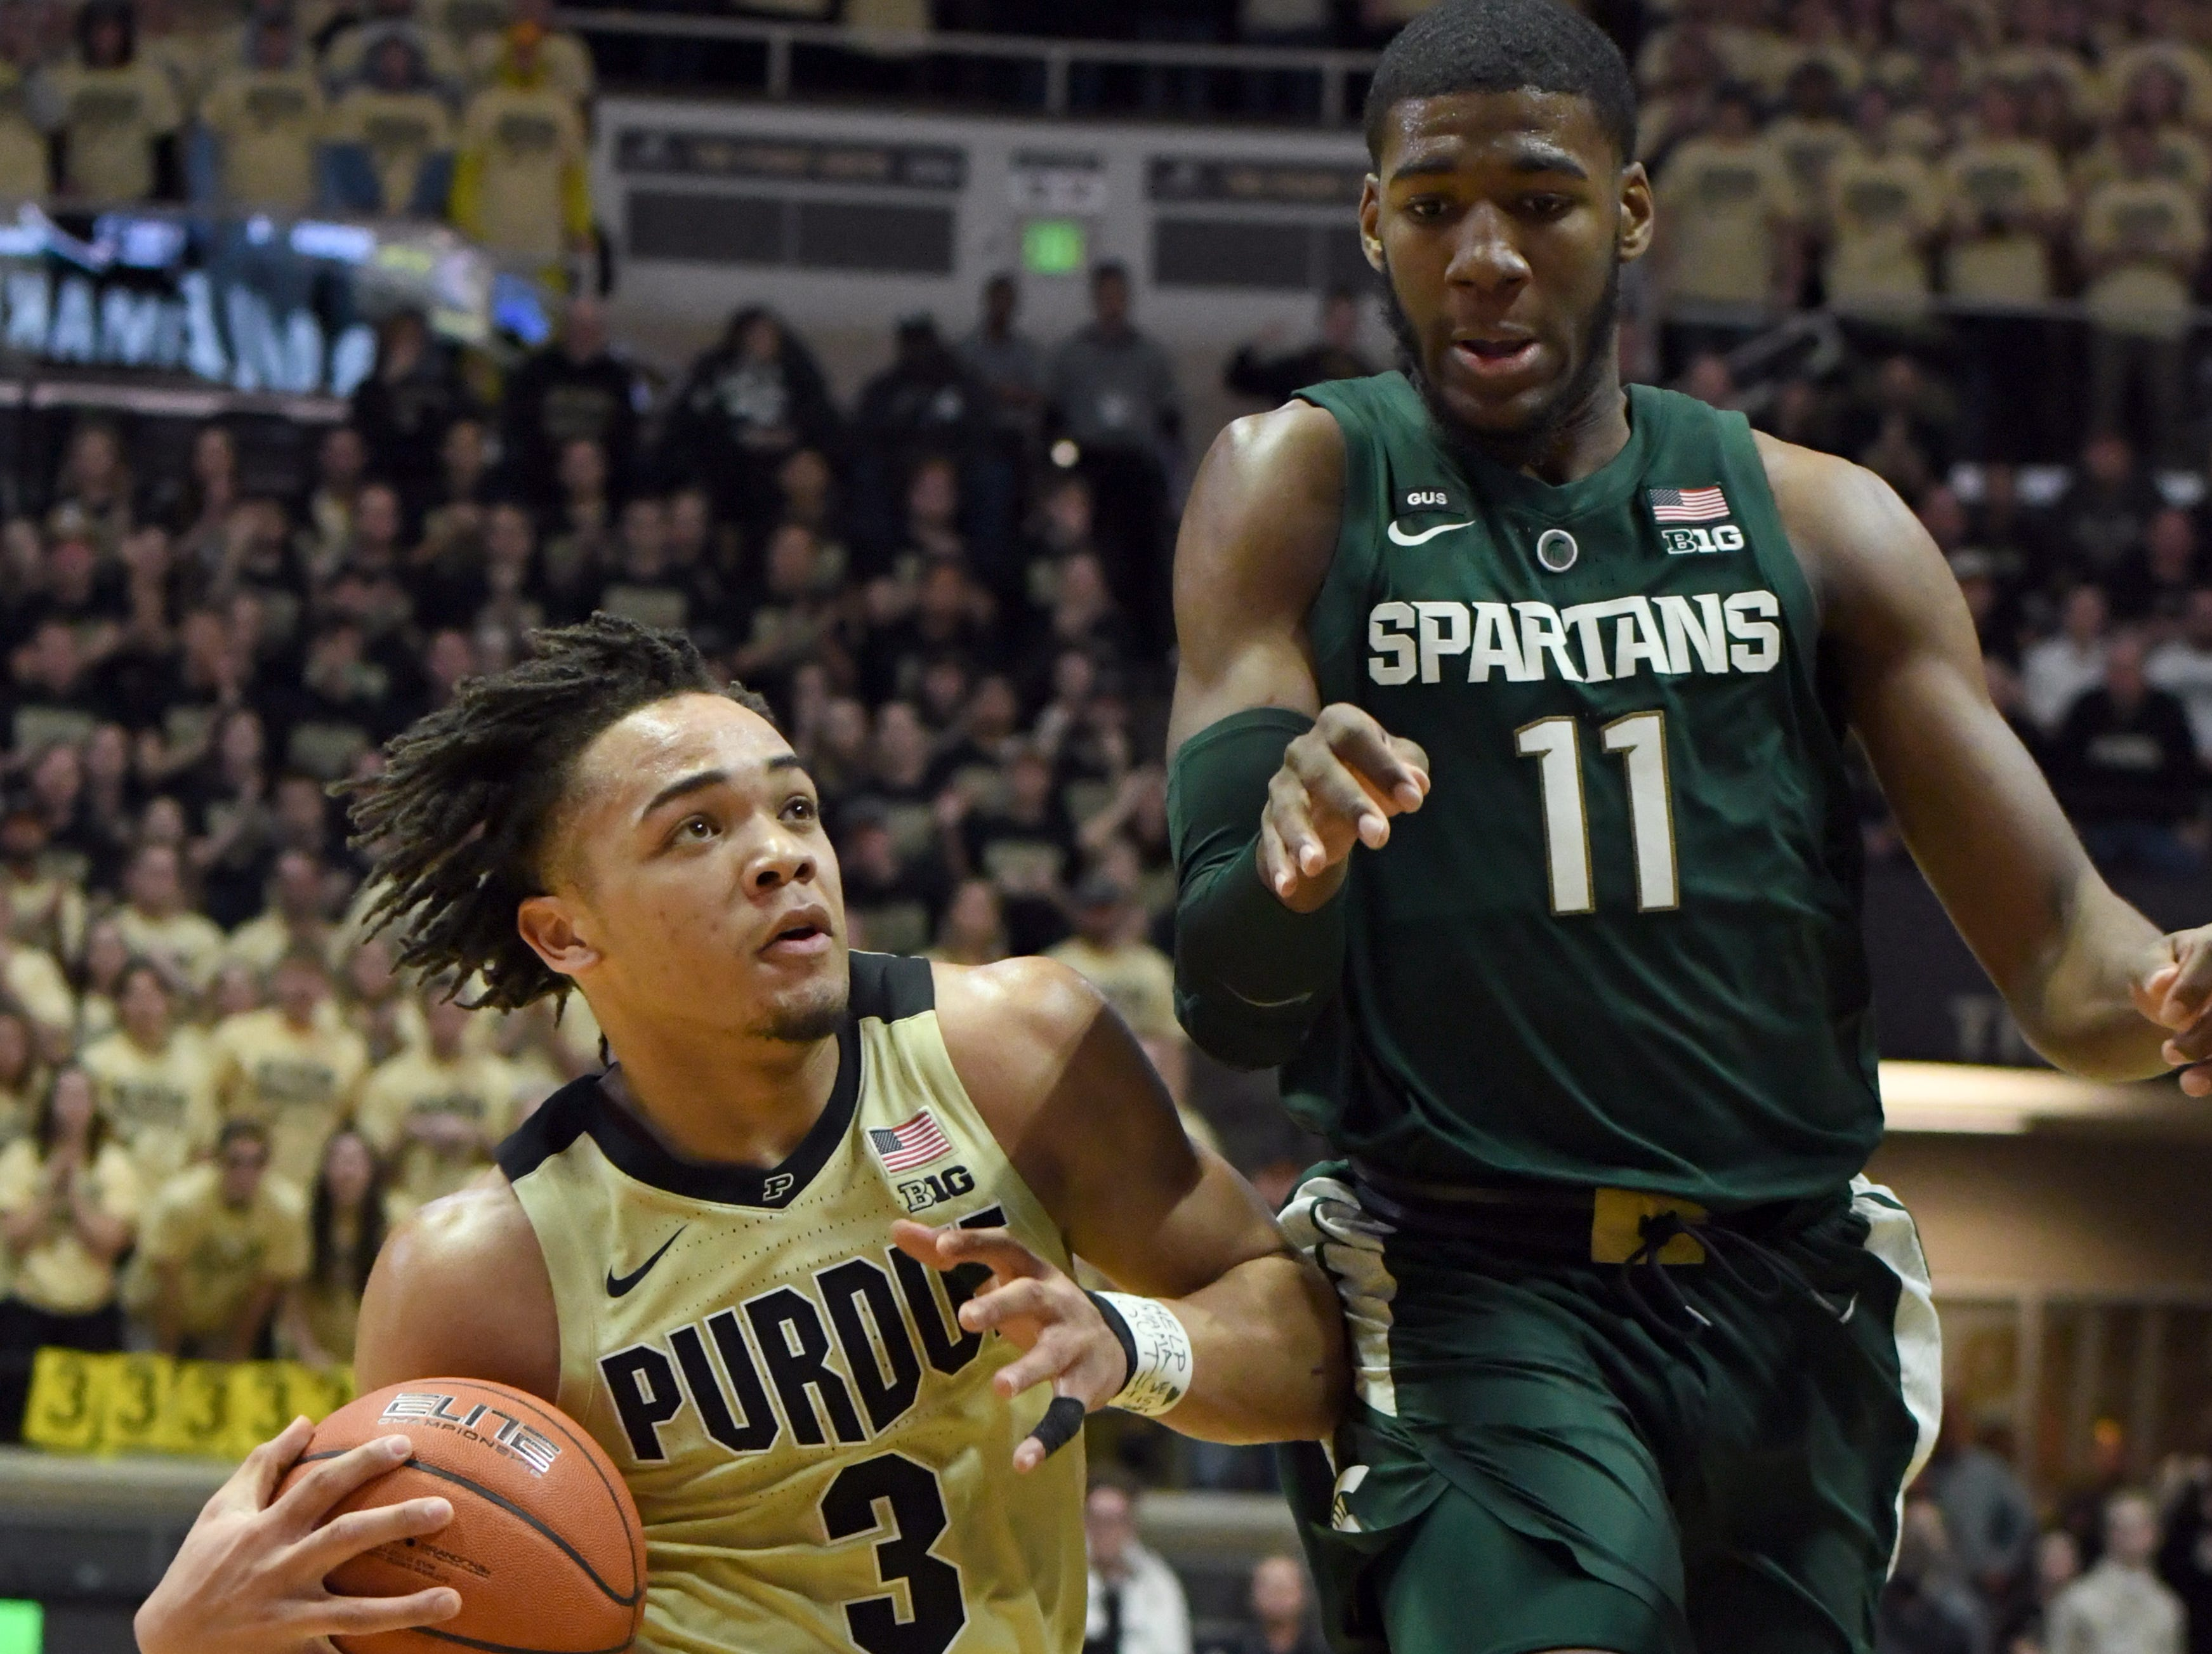 Carsen Edwards and the Boilermakers moved up to No. 17 in the latest AP poll.